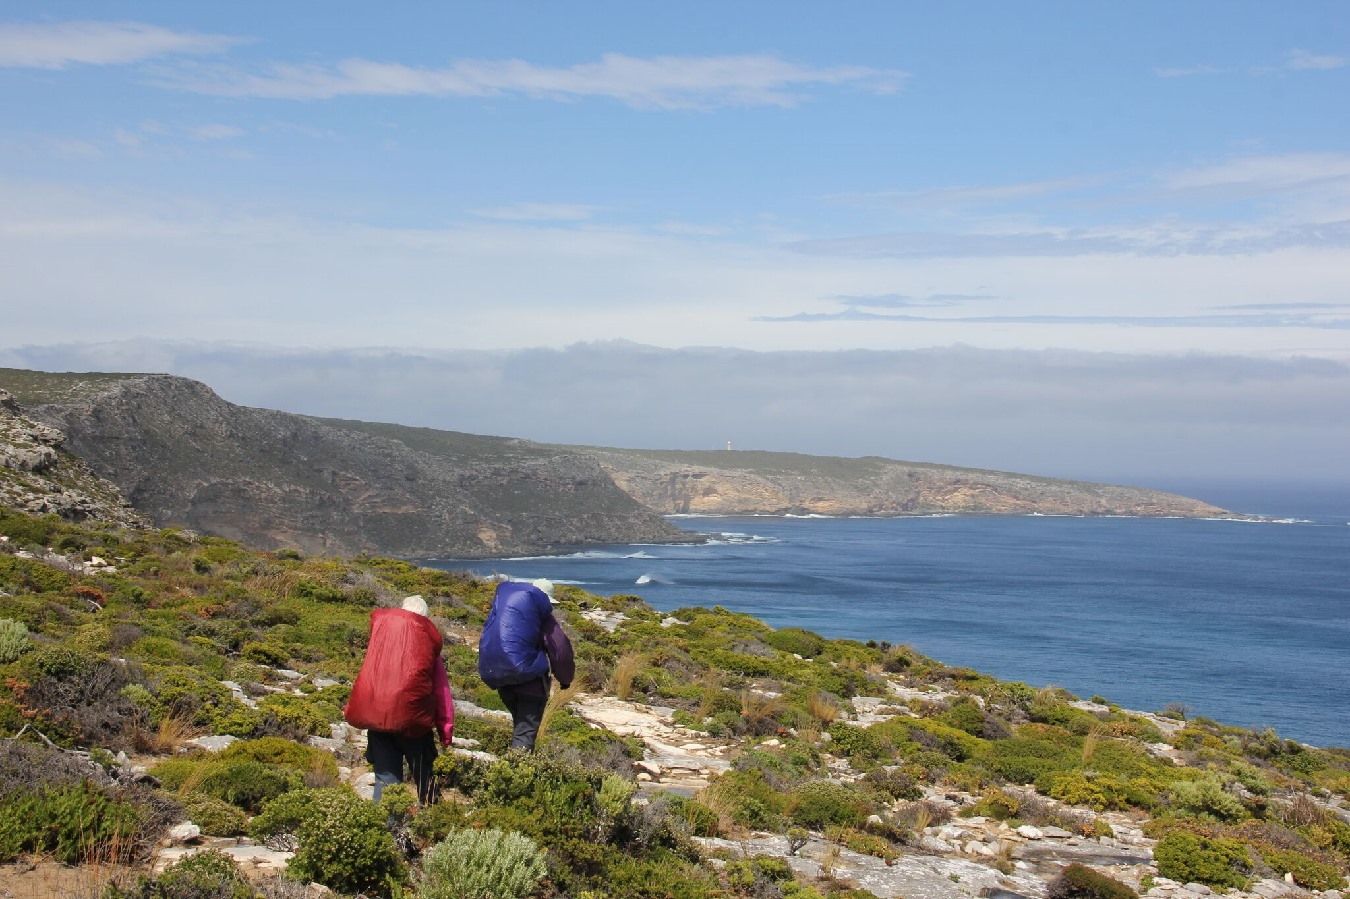 Maupertuis Bay, Kangaroo Island Wilderness Trail, looking to Cape Du Couedic, by Mike Smith